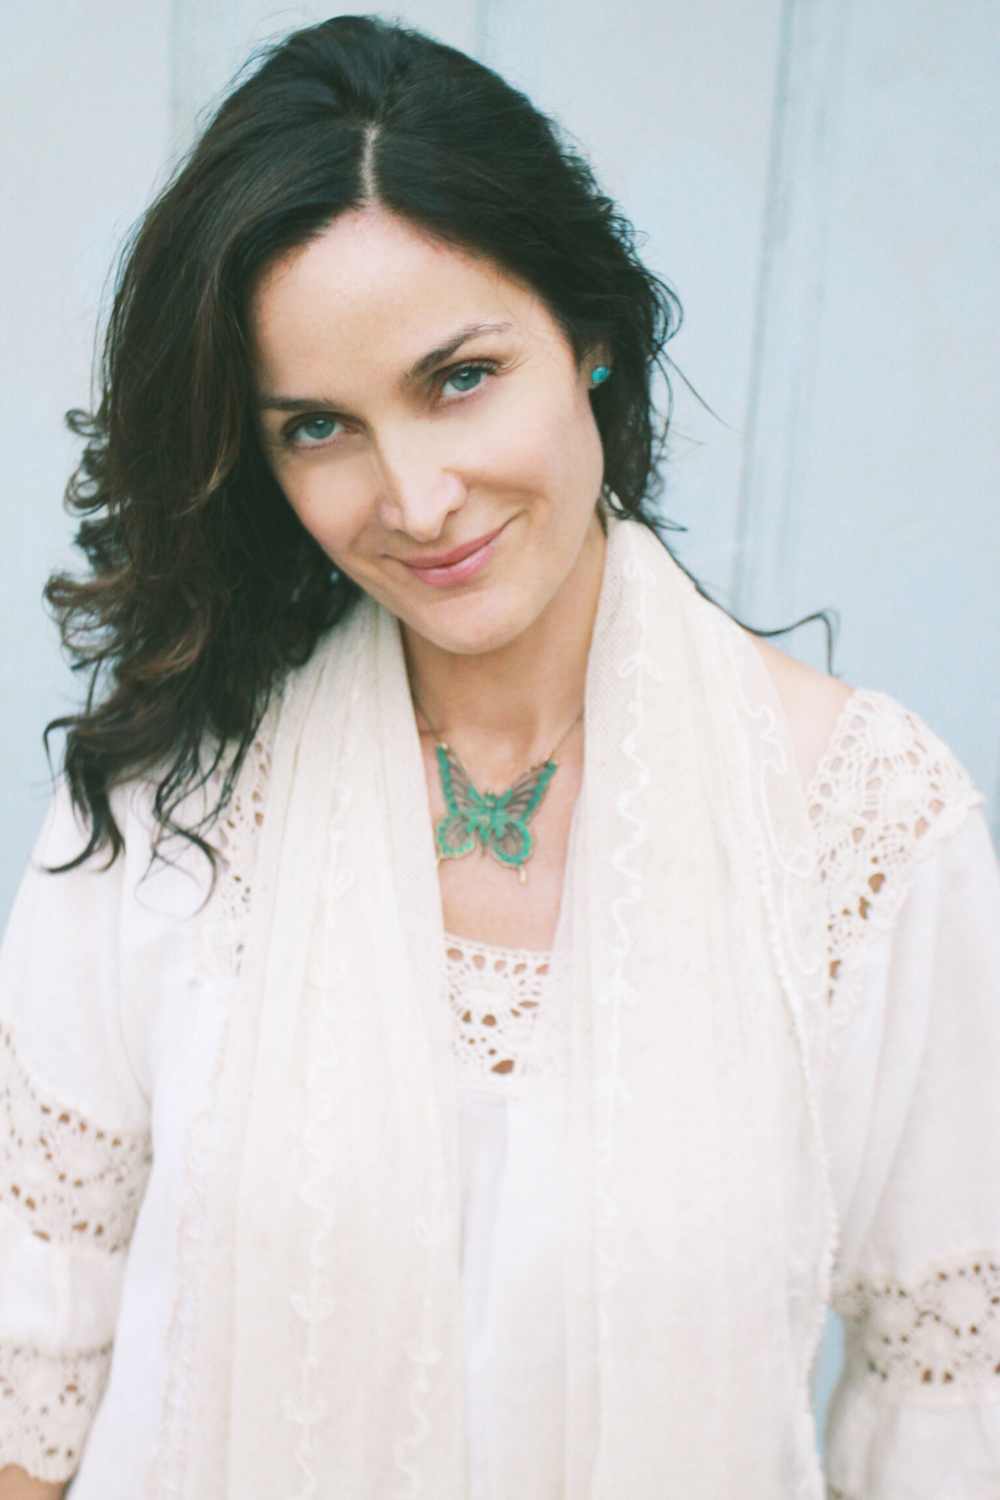 Carrie-Anne Moss. Photo by Denise Andrade-Kroon.